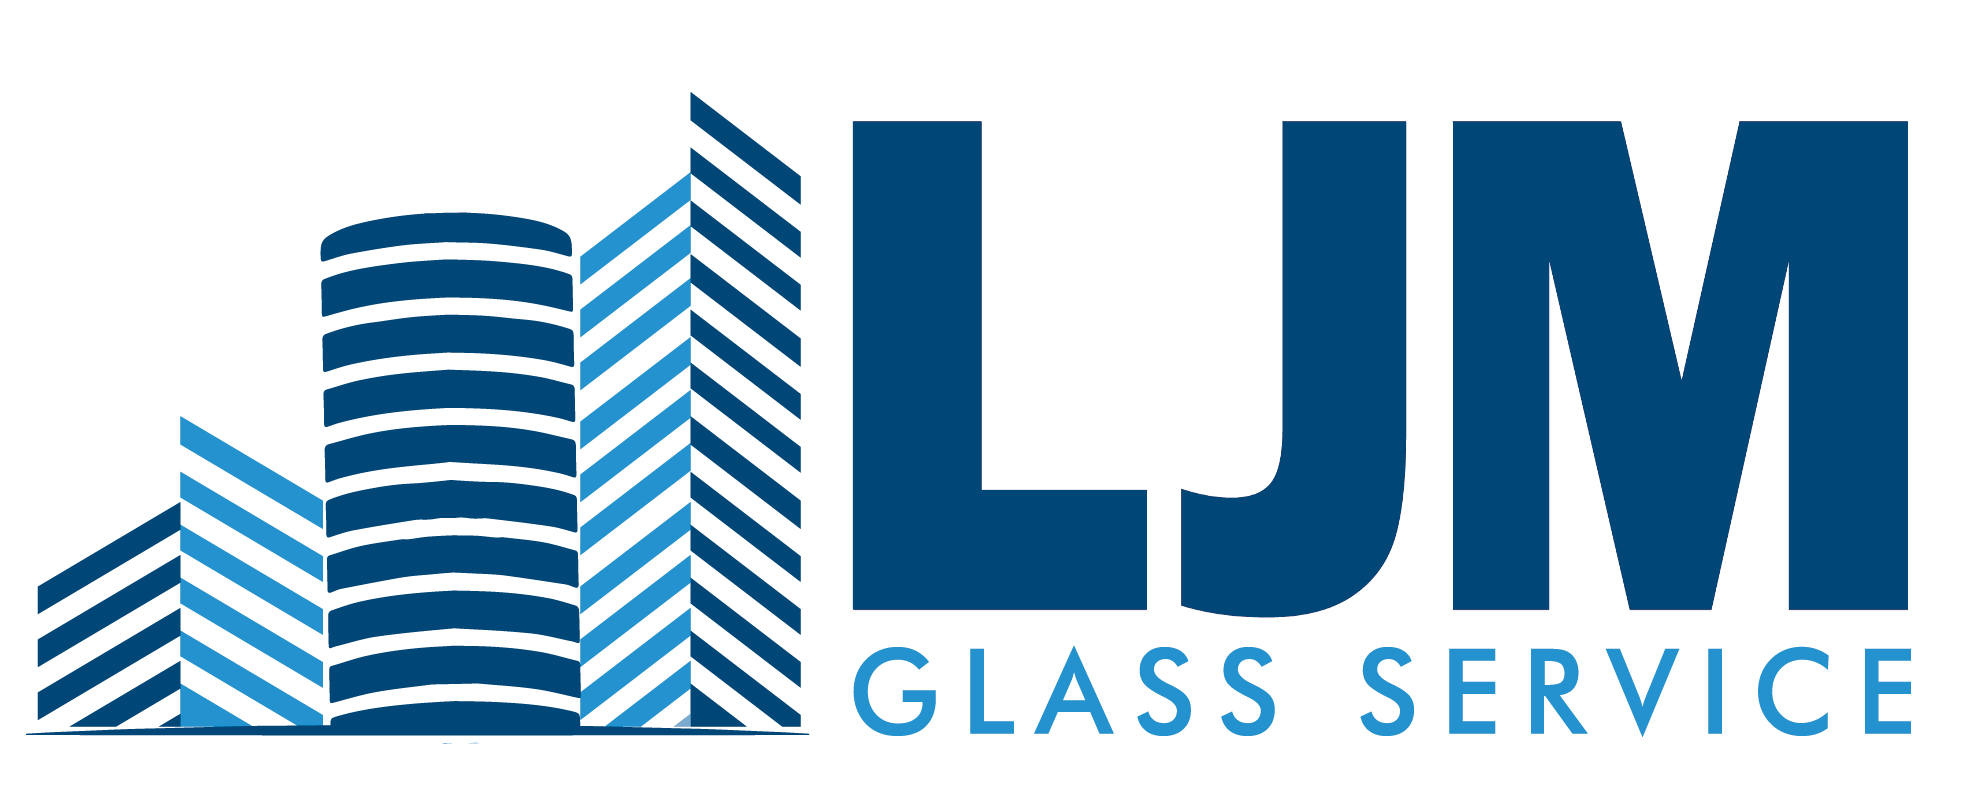 glass business